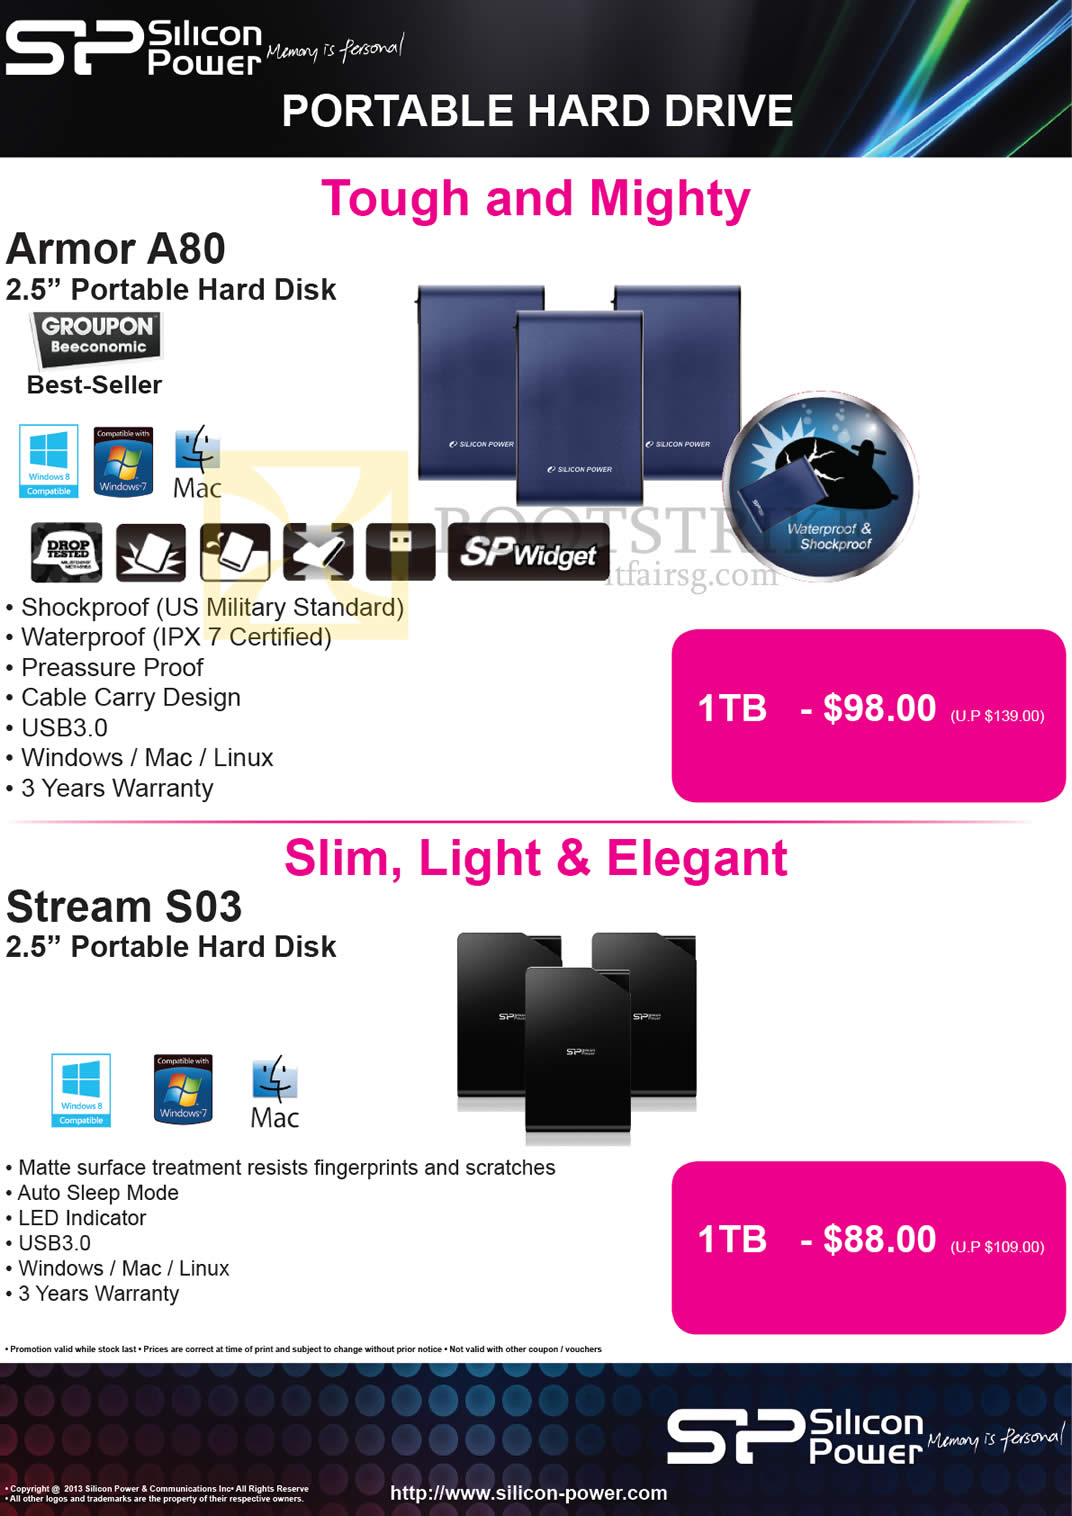 COMEX 2013 price list image brochure of The Perpetuity Silicon Power External Storage Armor A80 1TB, Stream S03